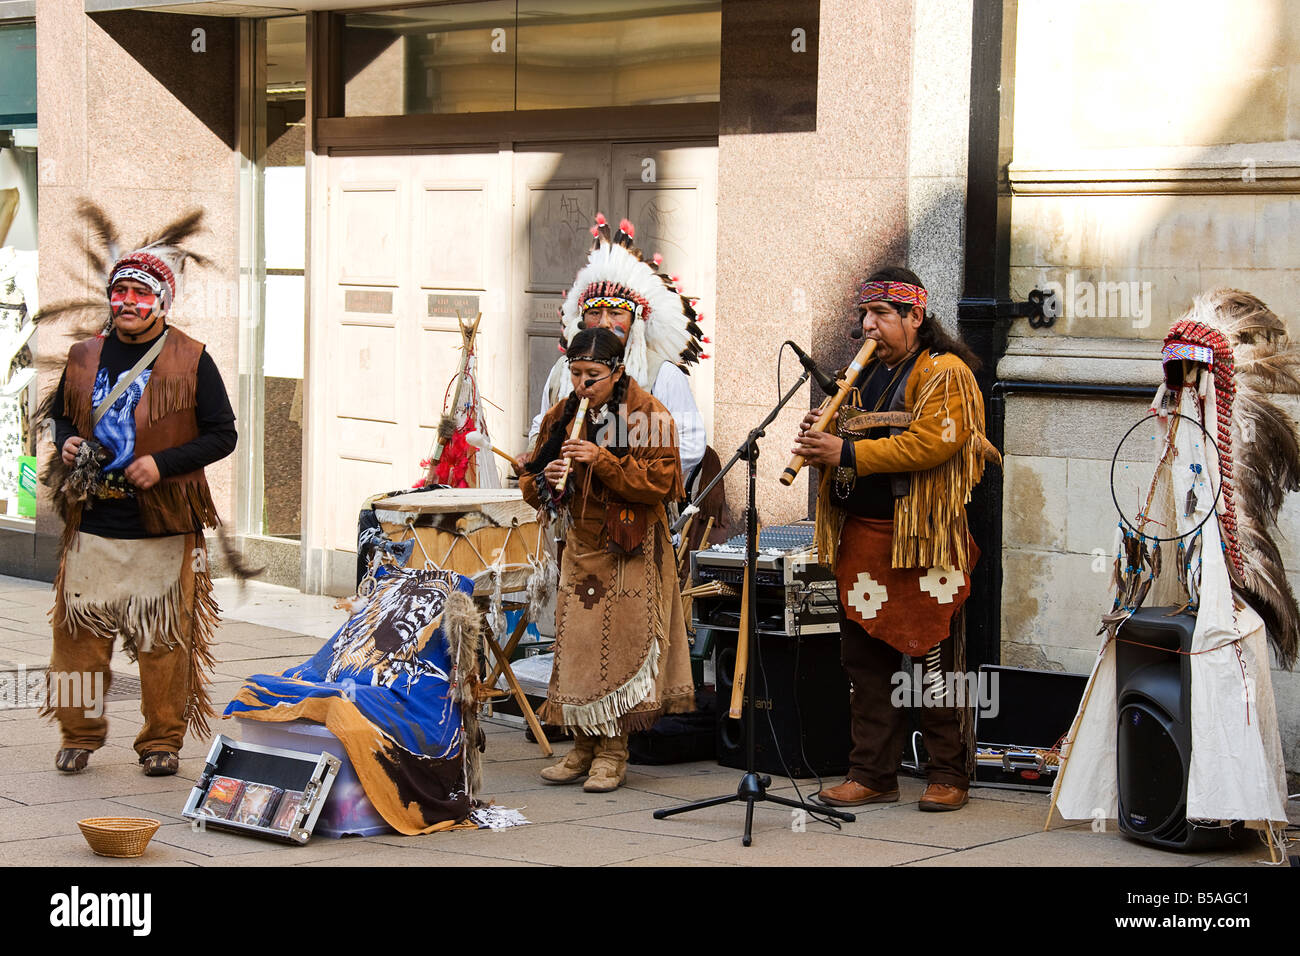 Buskers performing in the street. - Stock Image